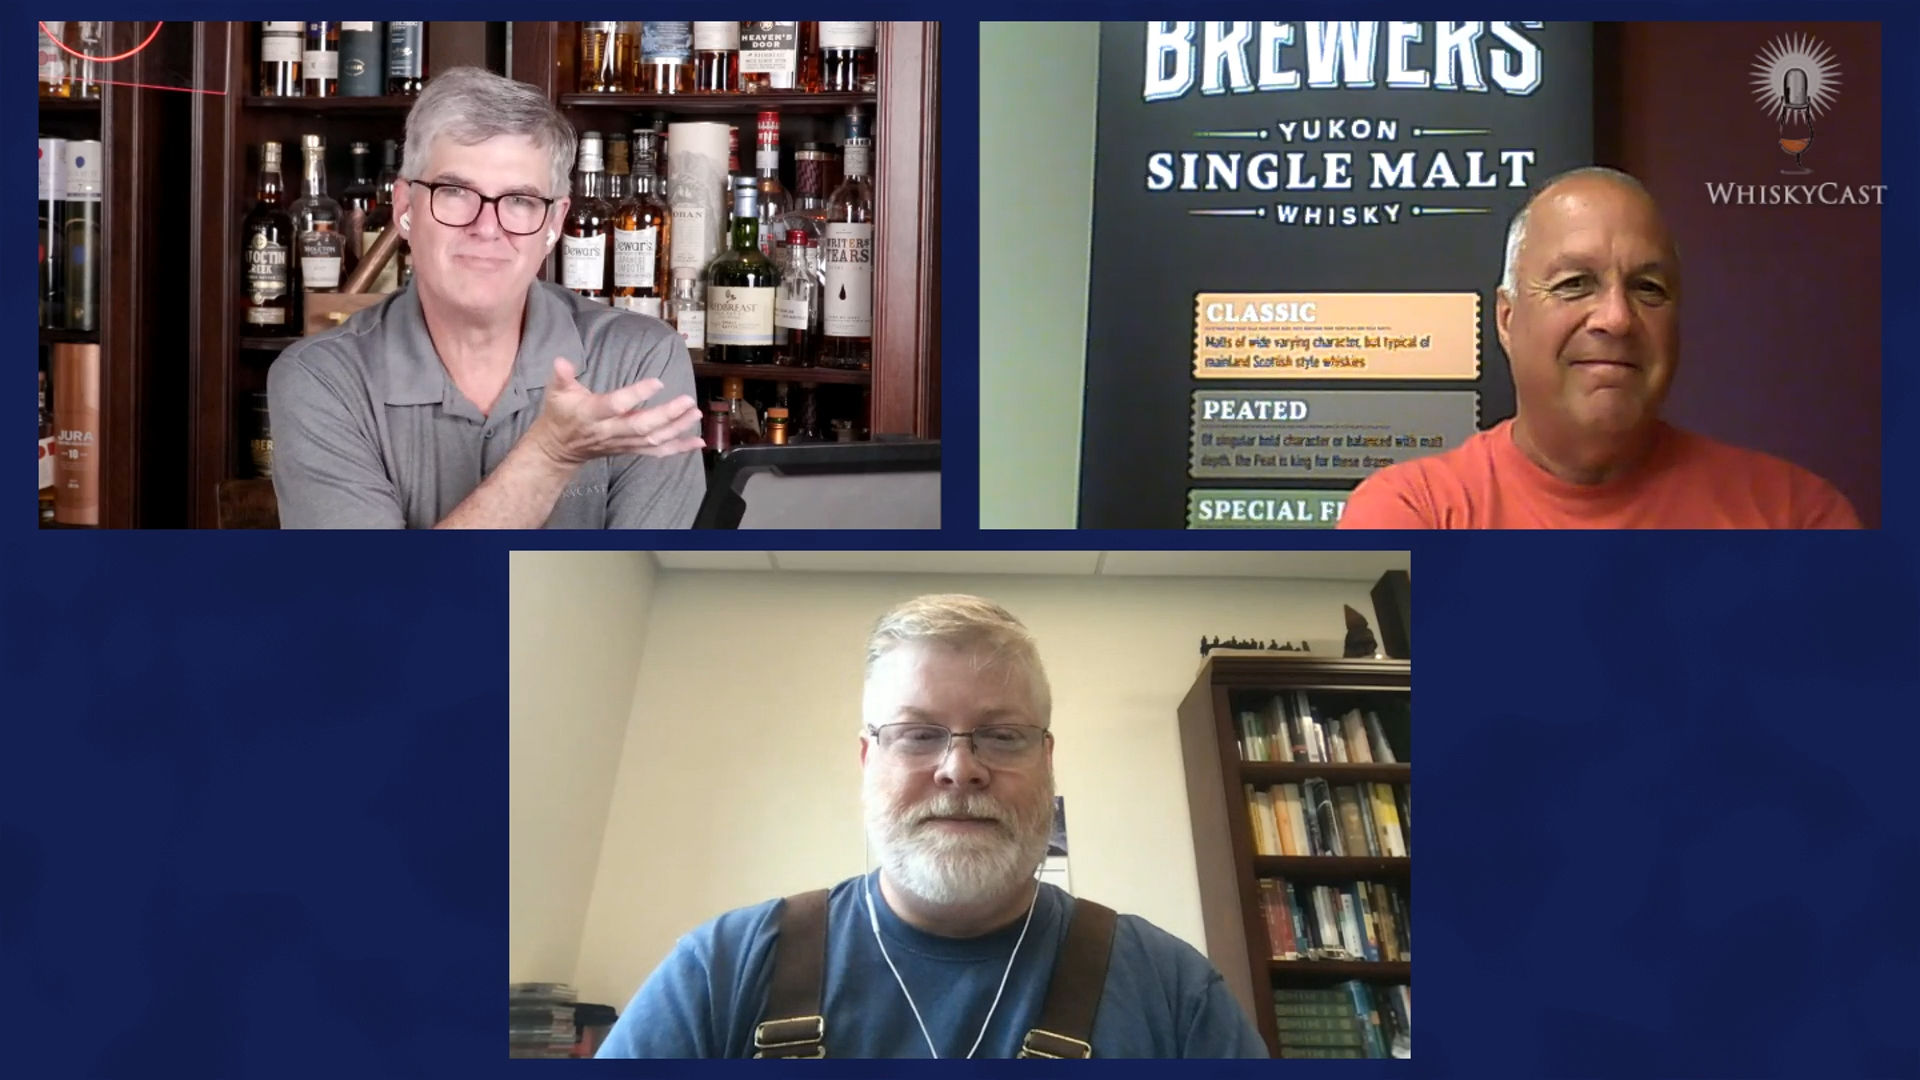 Bob Baxter of Yukon Spirits/Two Brewers Whisky and Todd Leopold of Leopold Bros. in Denver joined us on Friday night's live webcast. We'll have an audio version available soon.